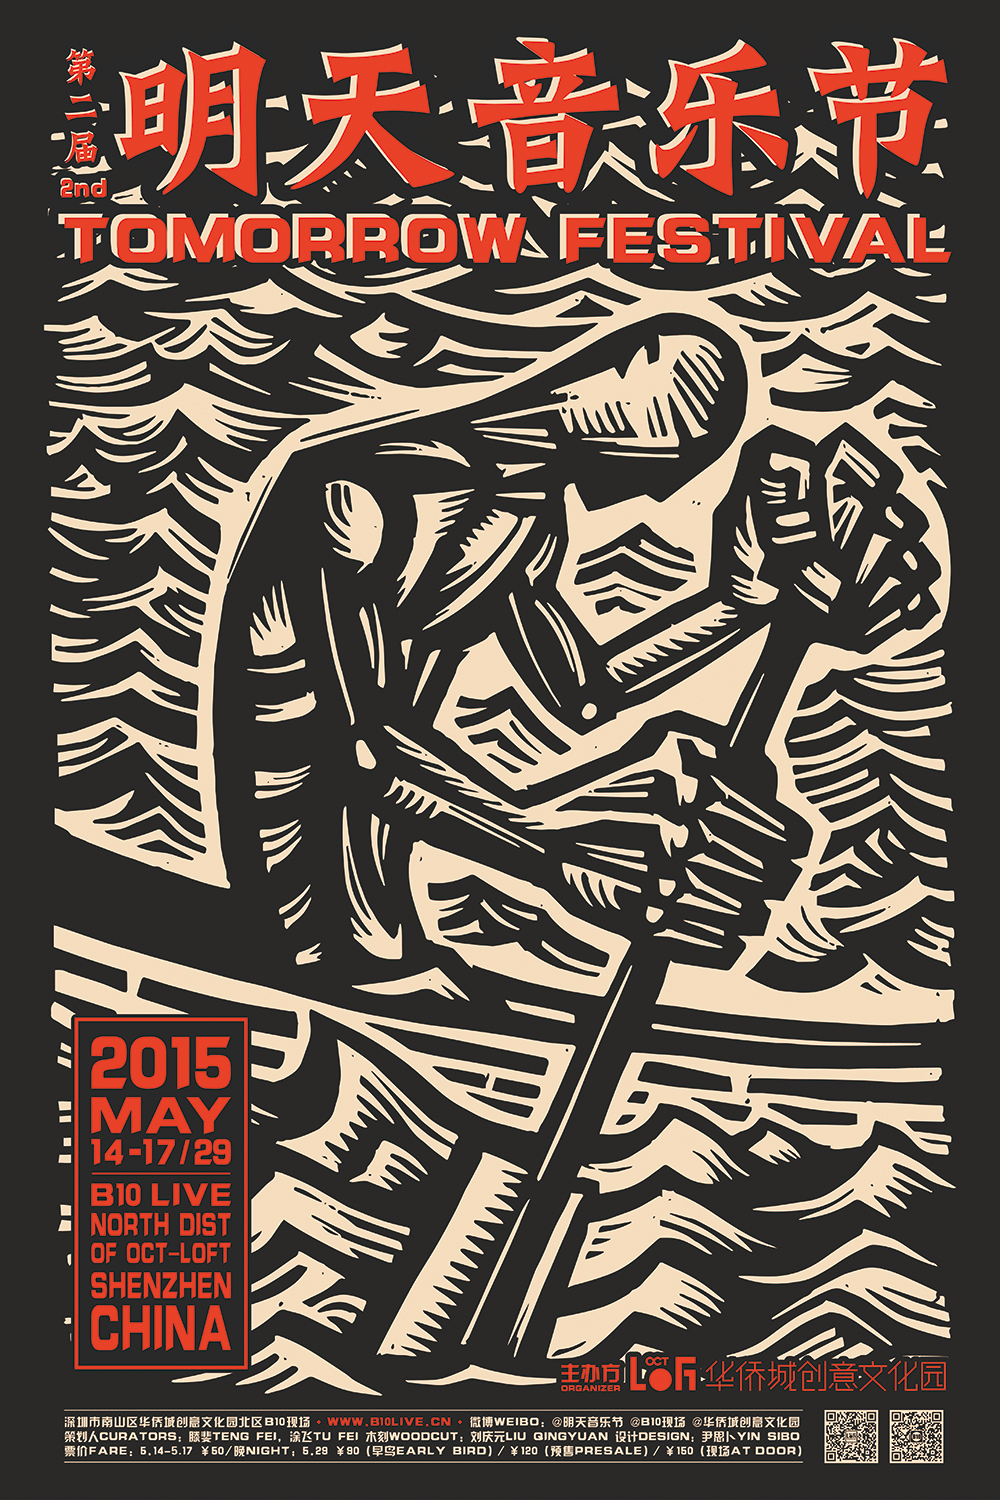 2nd Tomorrow Festival 2015.5.14-17 / 5.29 木刻 Woodcut:刘庆元 Liu Qingyuan 设计 Designer:尹思卜 Yin Sibo